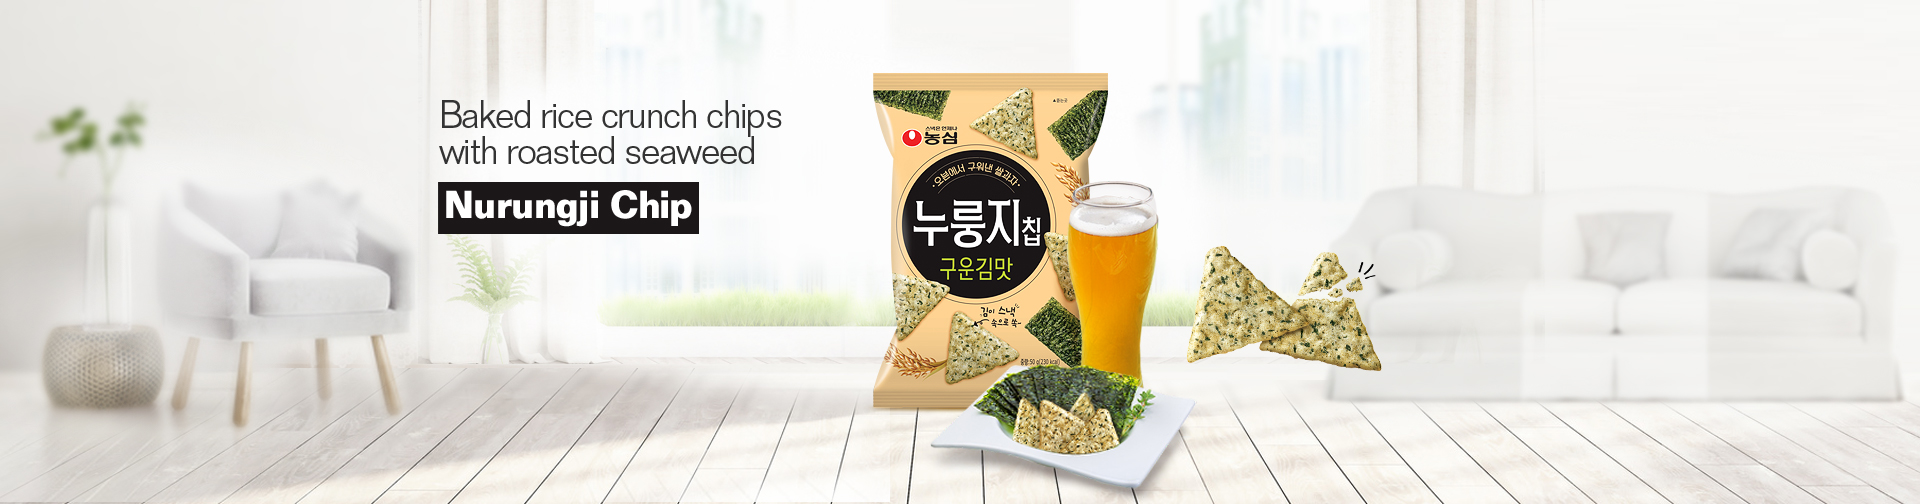 Baked Rice Crunch Chips with Roasted Seaweed Nurungji Chip